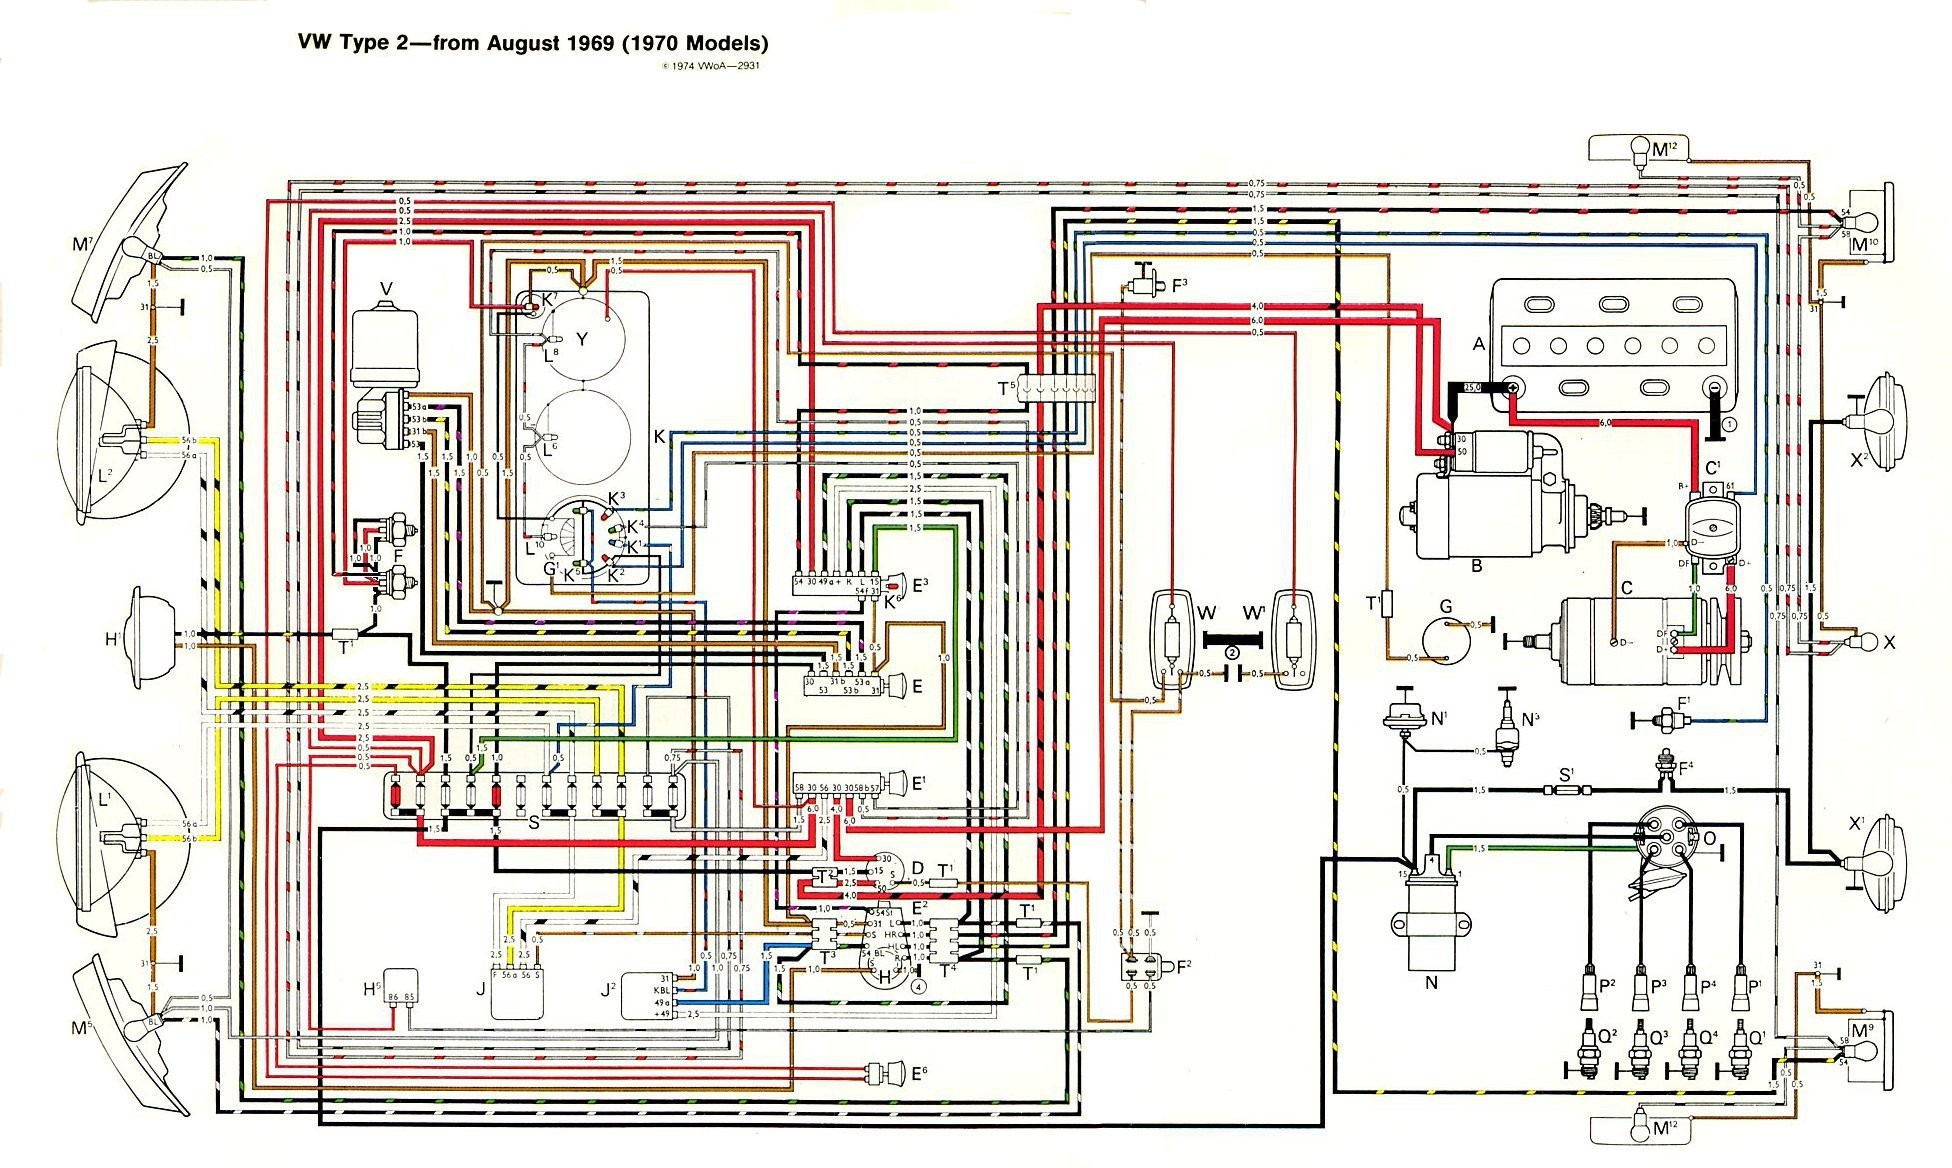 Wiring Diagram for Bad Boy Buggy 2c237f Bad Boy Buggies Wiring Diagram Of Wiring Diagram for Bad Boy Buggy